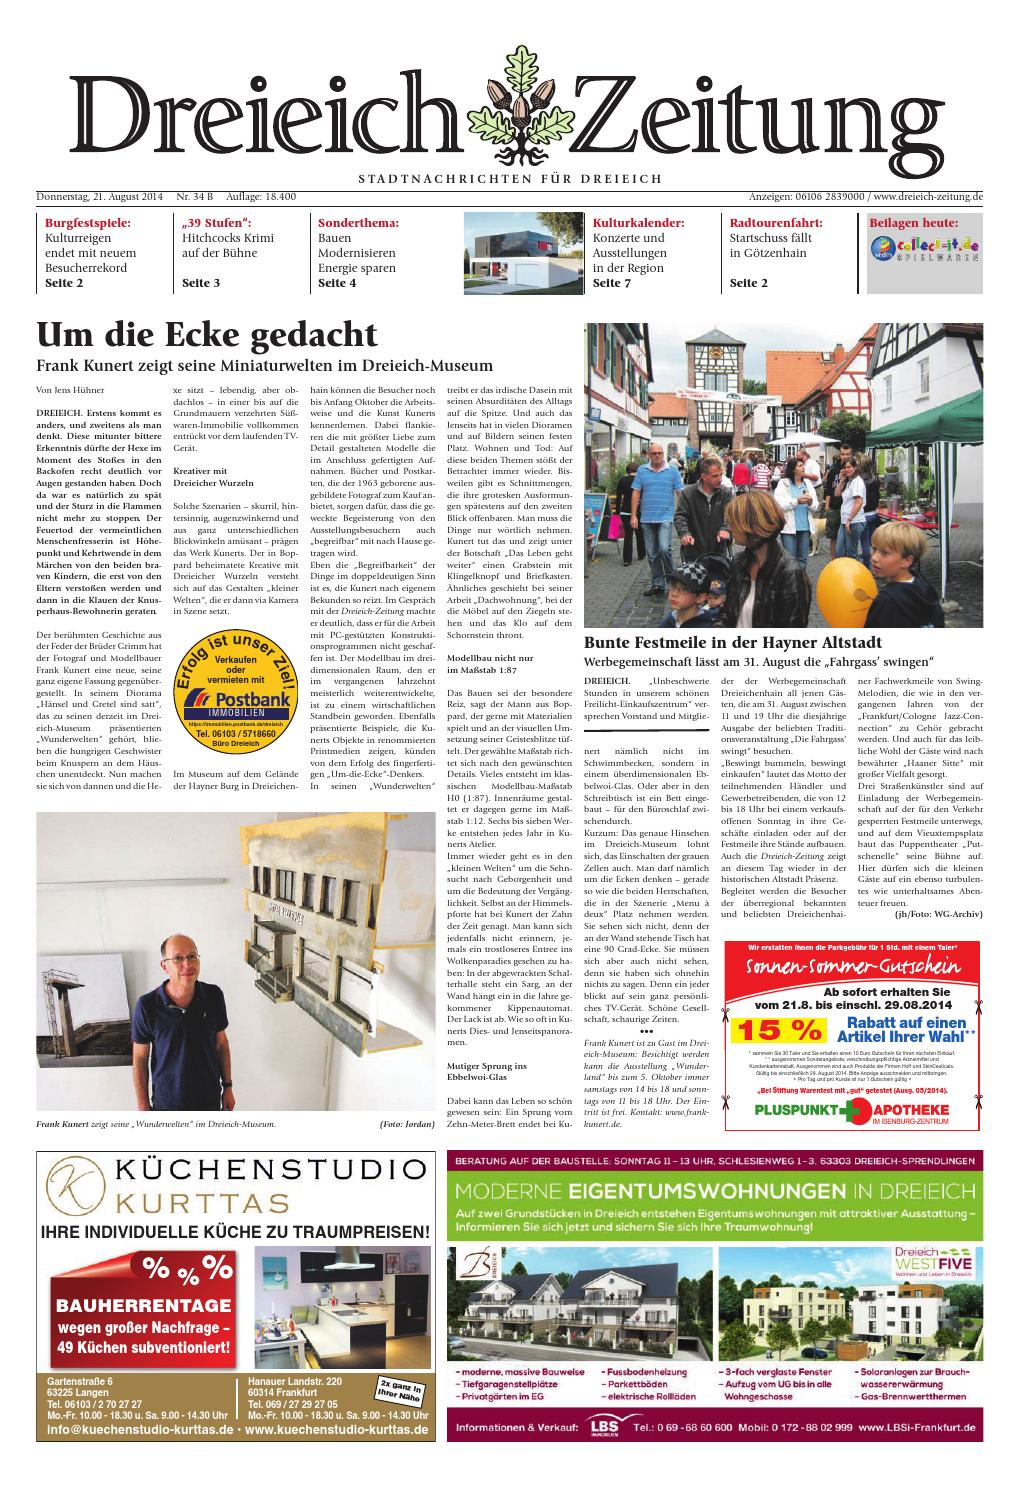 ^ Dz online 034 14 b by Dreieich-Zeitung/Offenbach-Journal - issuu